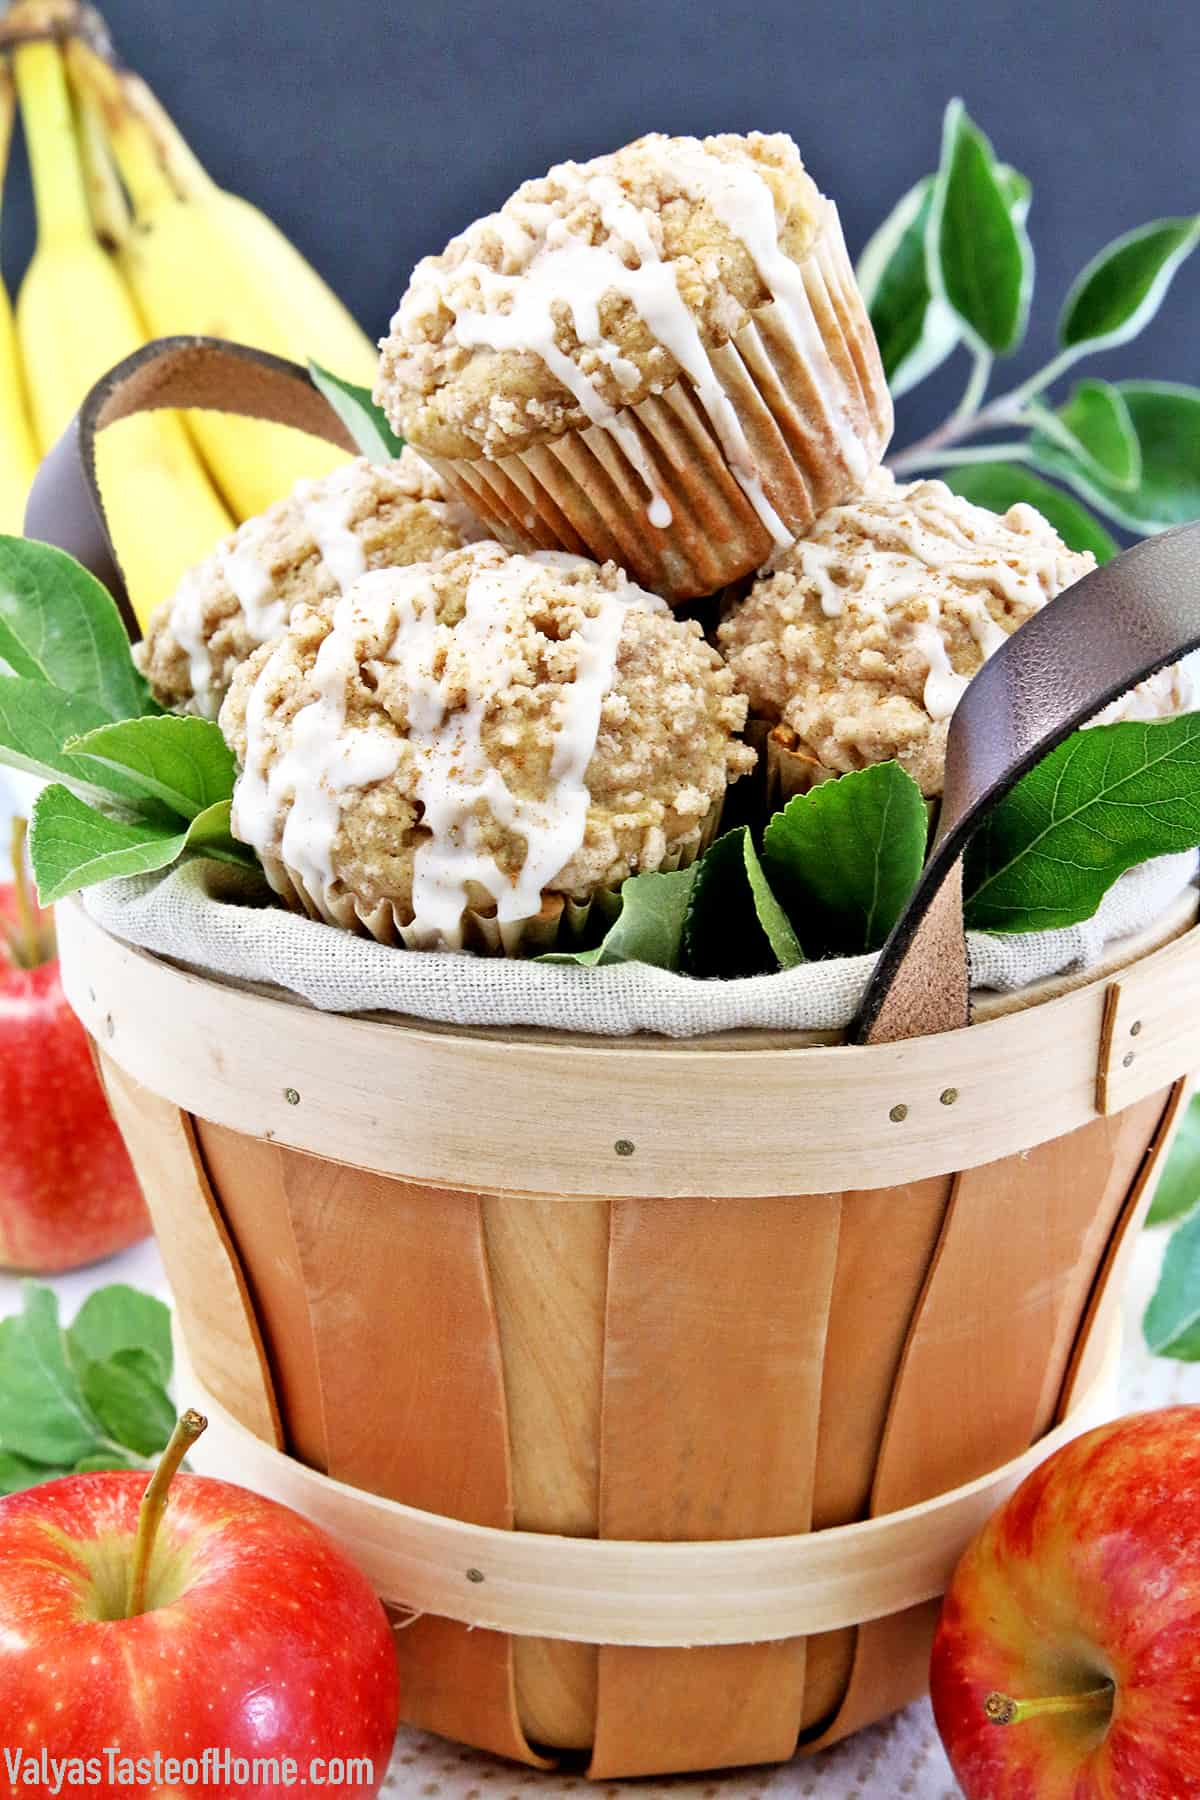 These Glazed Apple Banana Crumb Muffins are super moist, flavorful, and absolutely delicious. Loaded with bananas and apples and crowned with a crunchy cinnamon-sugar crumb topping. And if that wasn't enough, drizzled with cinnamon vanilla glaze. #glazedapplebananacrumbmuffins #autumnbaking #easymuffins #valyastasteofhome